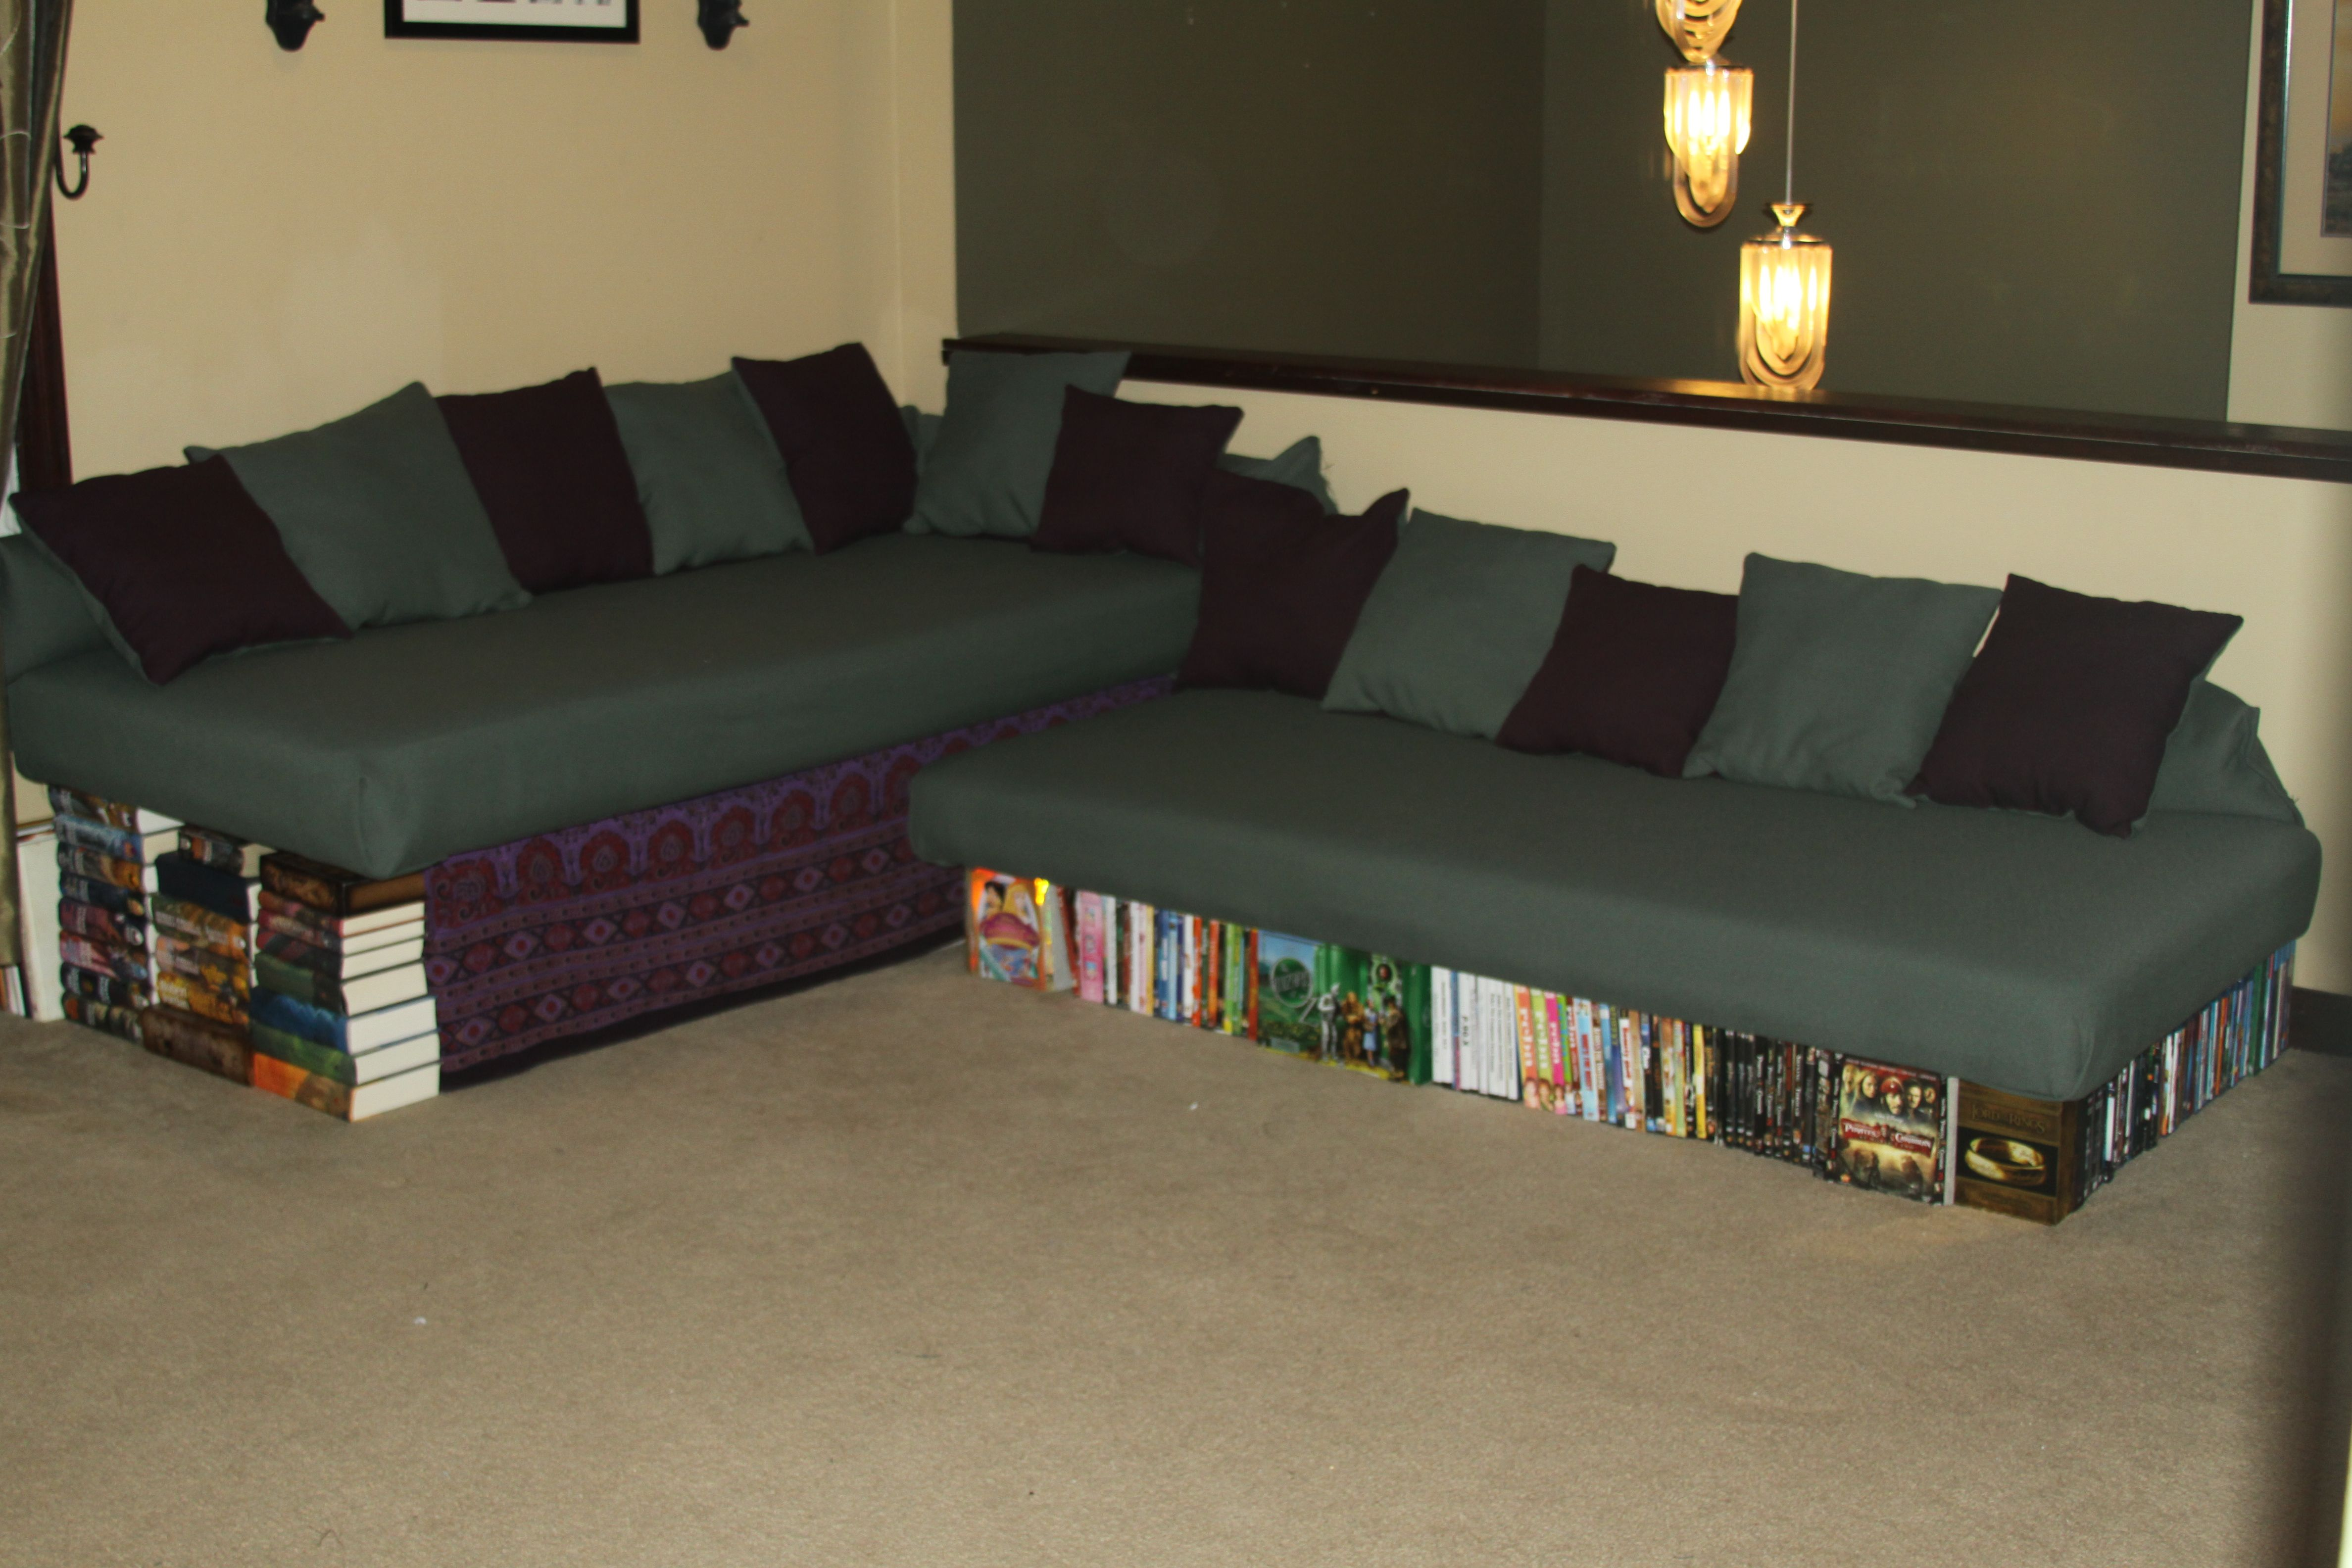 Pin By Sondra Gillean On Awesomeness Diy Couch Mattress Couch